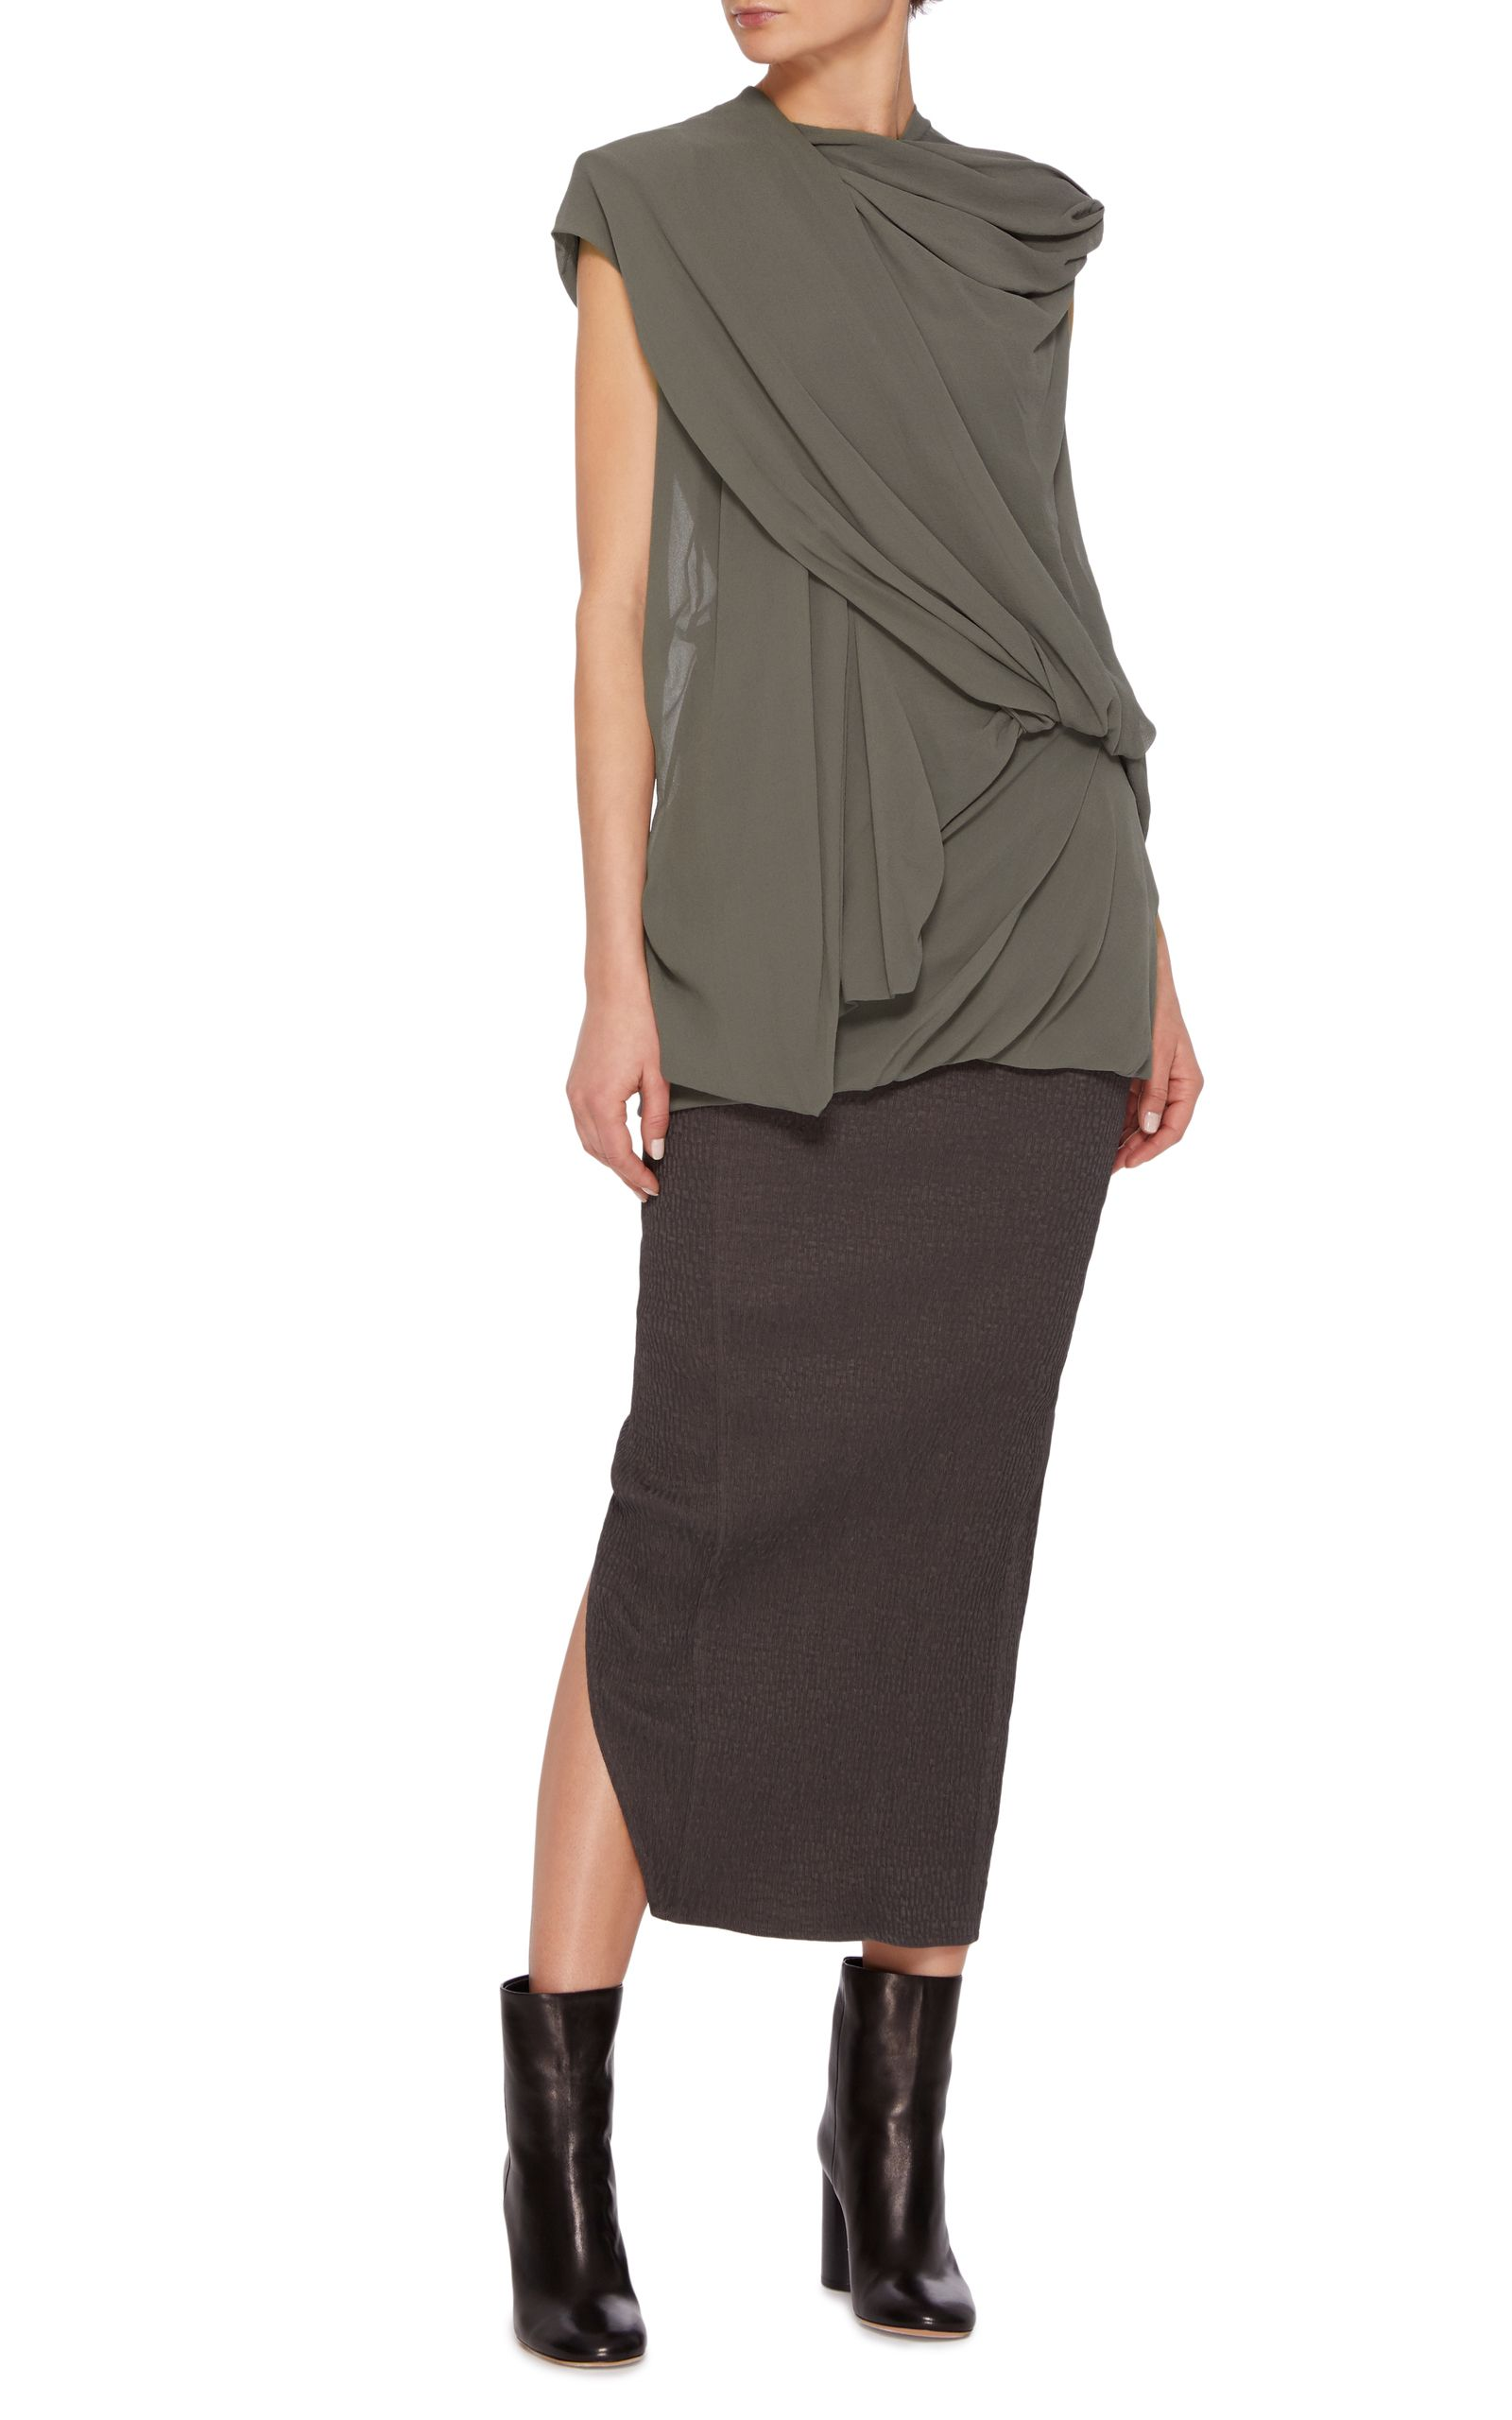 drapes front product bcbgmaxazria doris clothing gallery lyst draped black top crossover normal in sleeveless crossoverfront